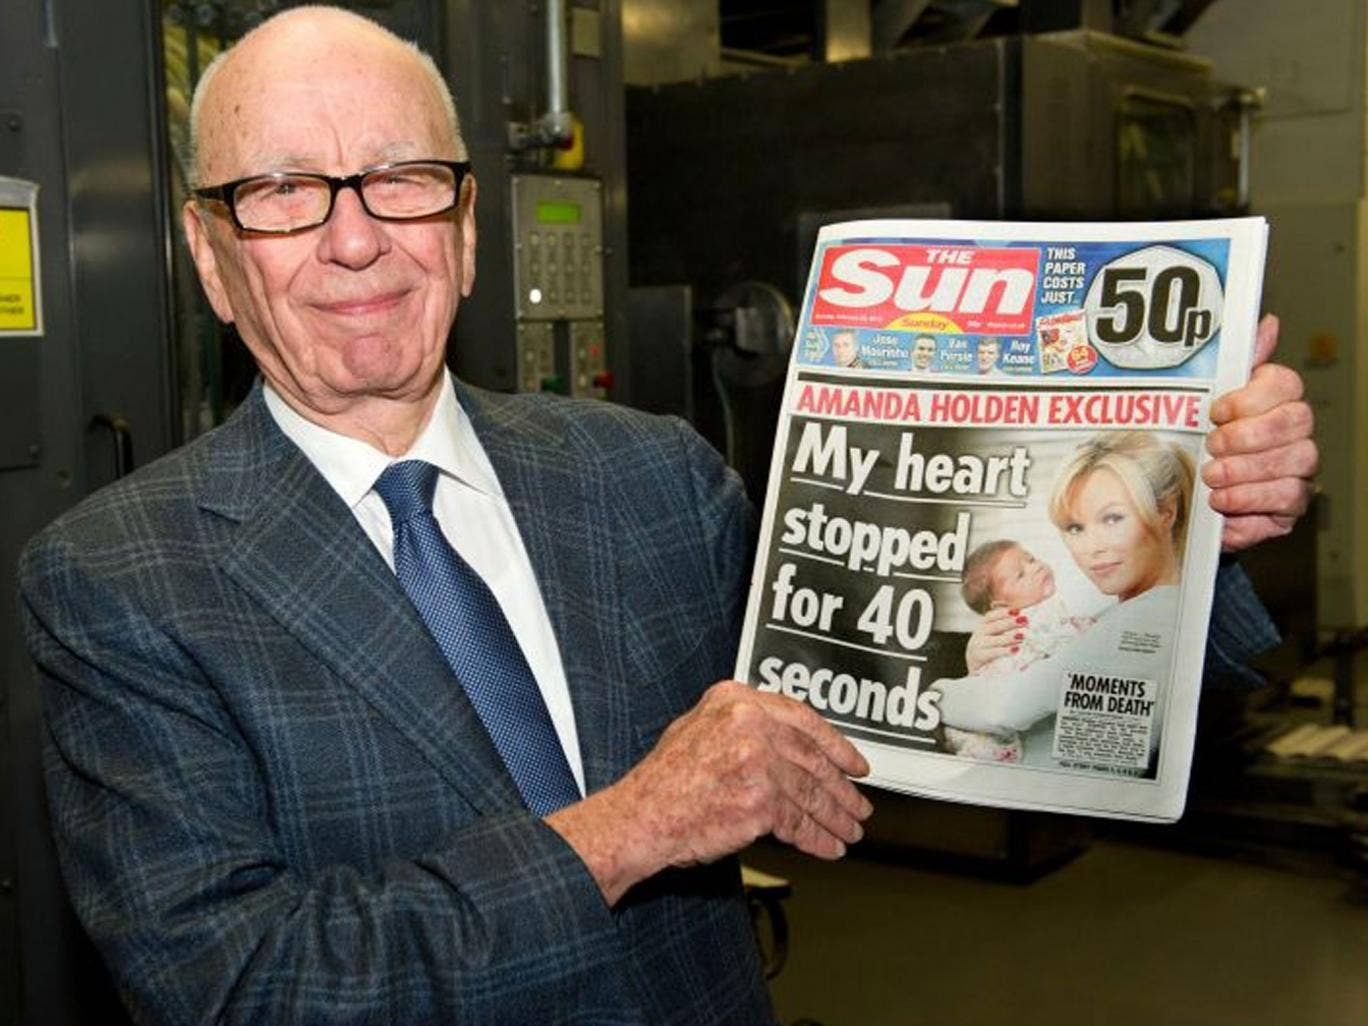 Rupert Murdoch is under increasing pressure from campaigners to drop the Page 3 feature,which started in 1970